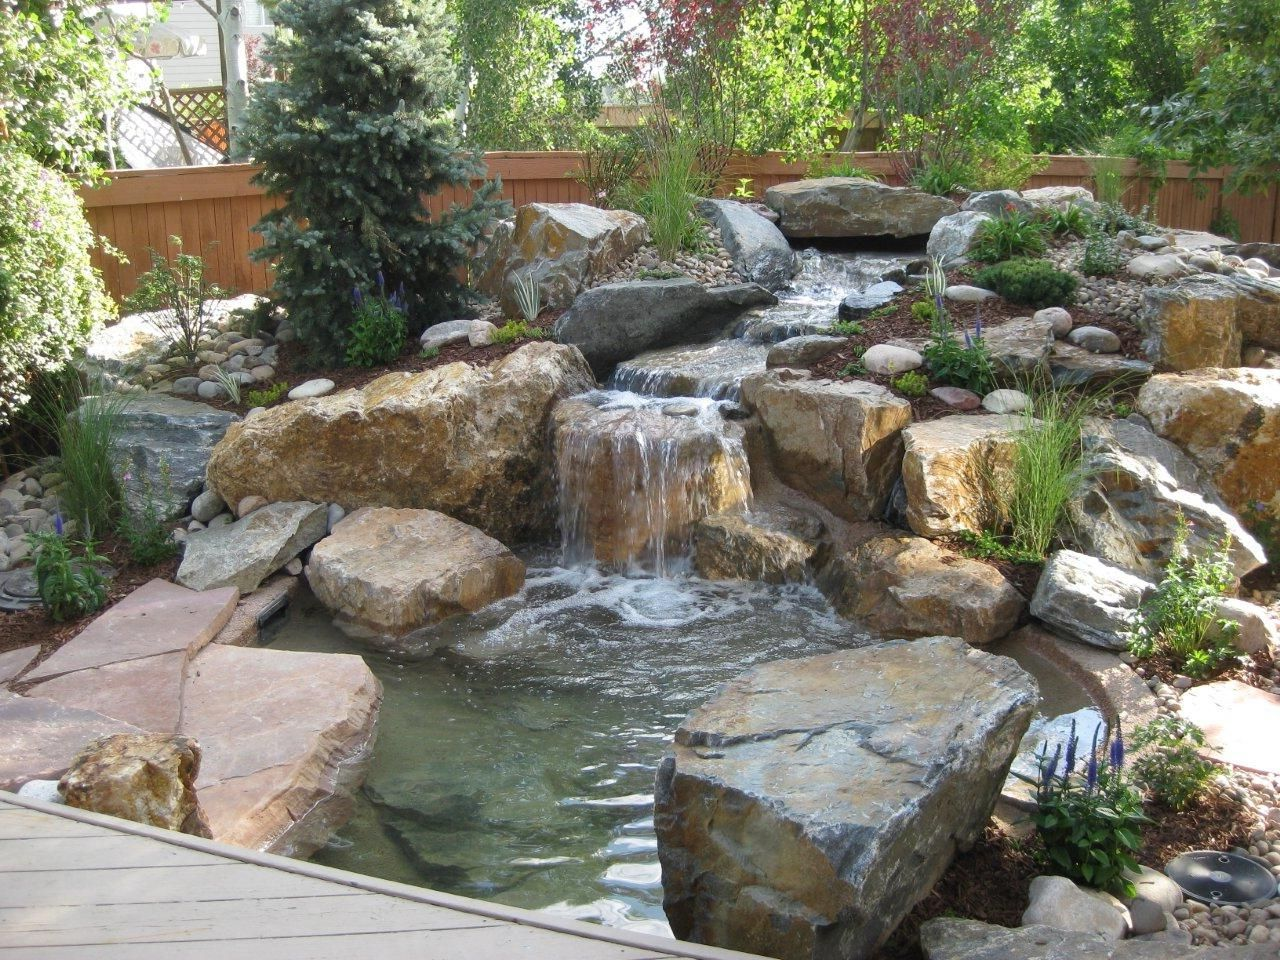 Backyard water features in japanese garden concept beautiful scenery of backyar garden - How to build an outdoor fountain with rocks ...